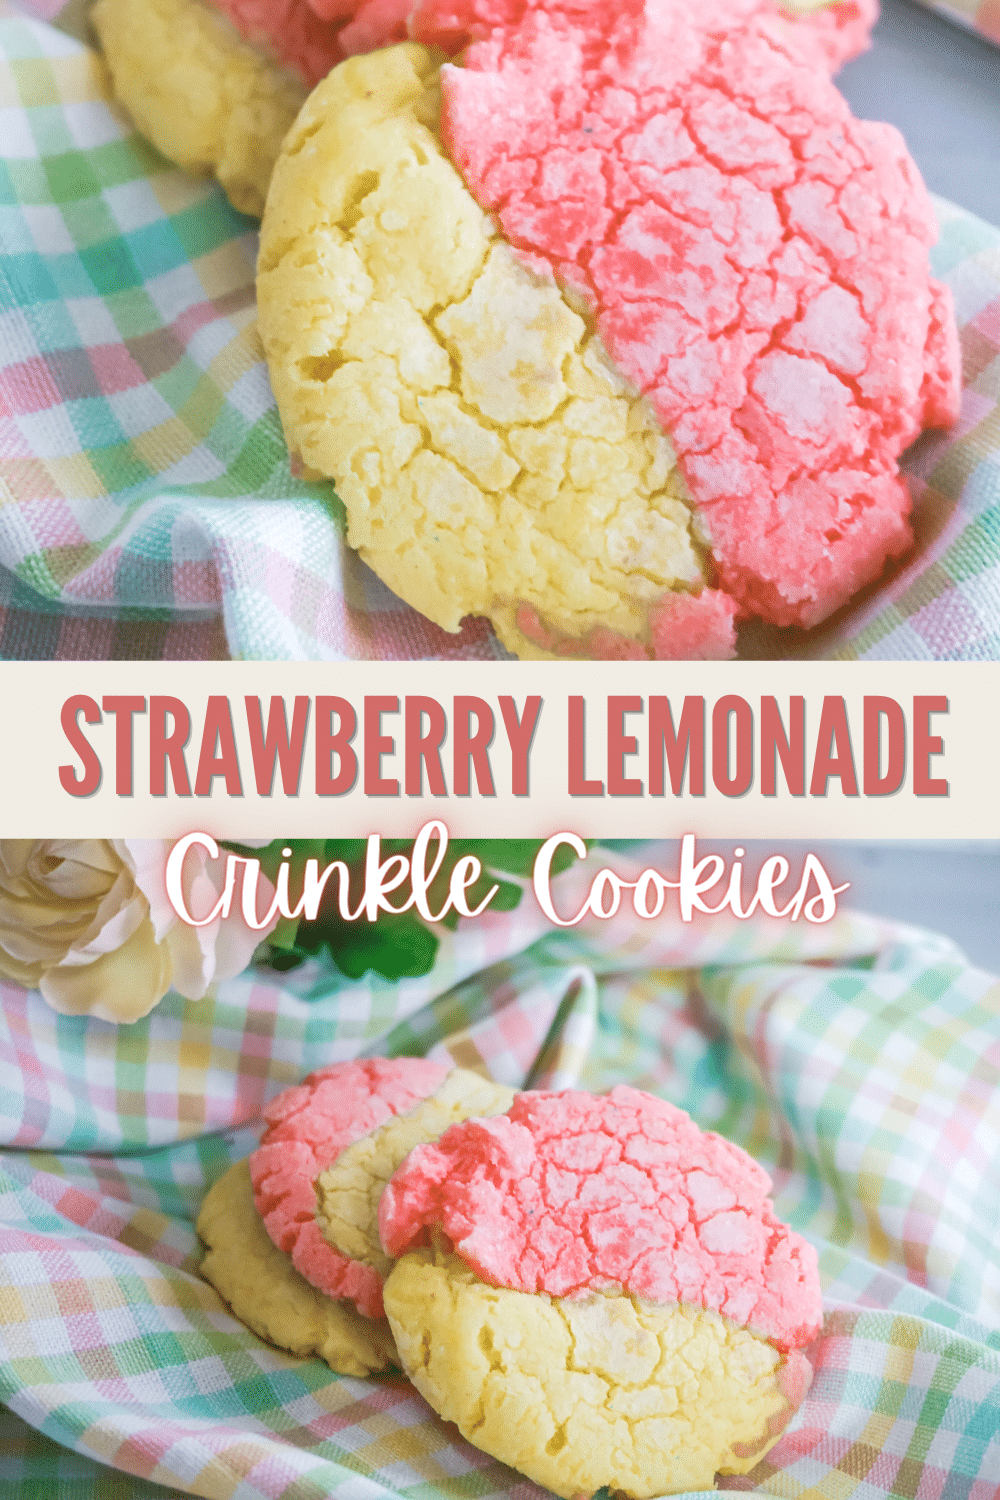 Strawberry Lemonade Crinkle Cookies are the cookies that you need in your life. The two-toned cookies are beautiful to look at! #crinklecookies #cookies #strawberrylemonade #recipe via @wondermomwannab